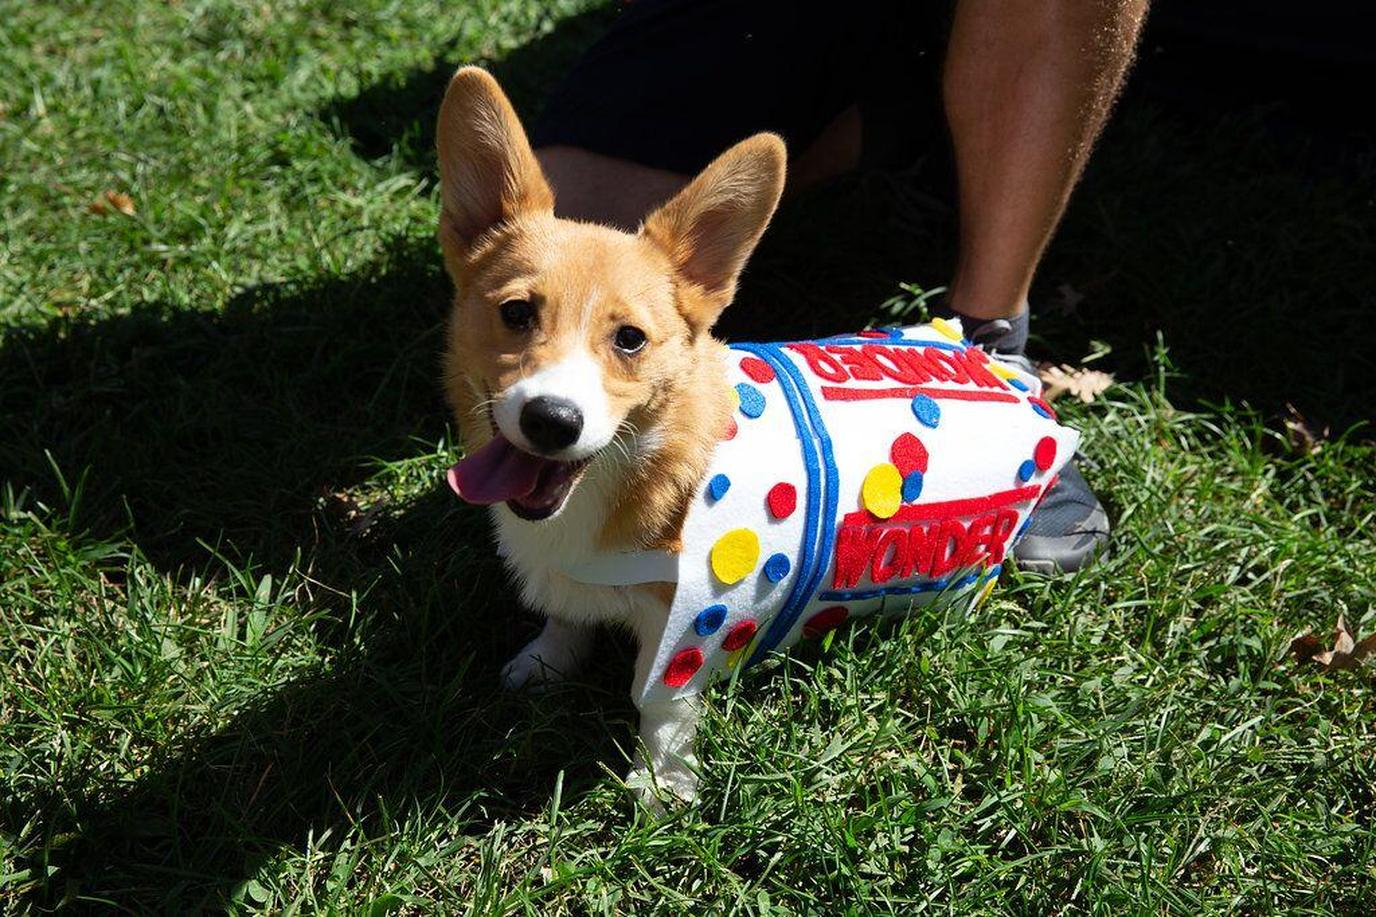 Come to Nashville for the 30th Annual Dog Day Festival, the city's longest-running dog festival.